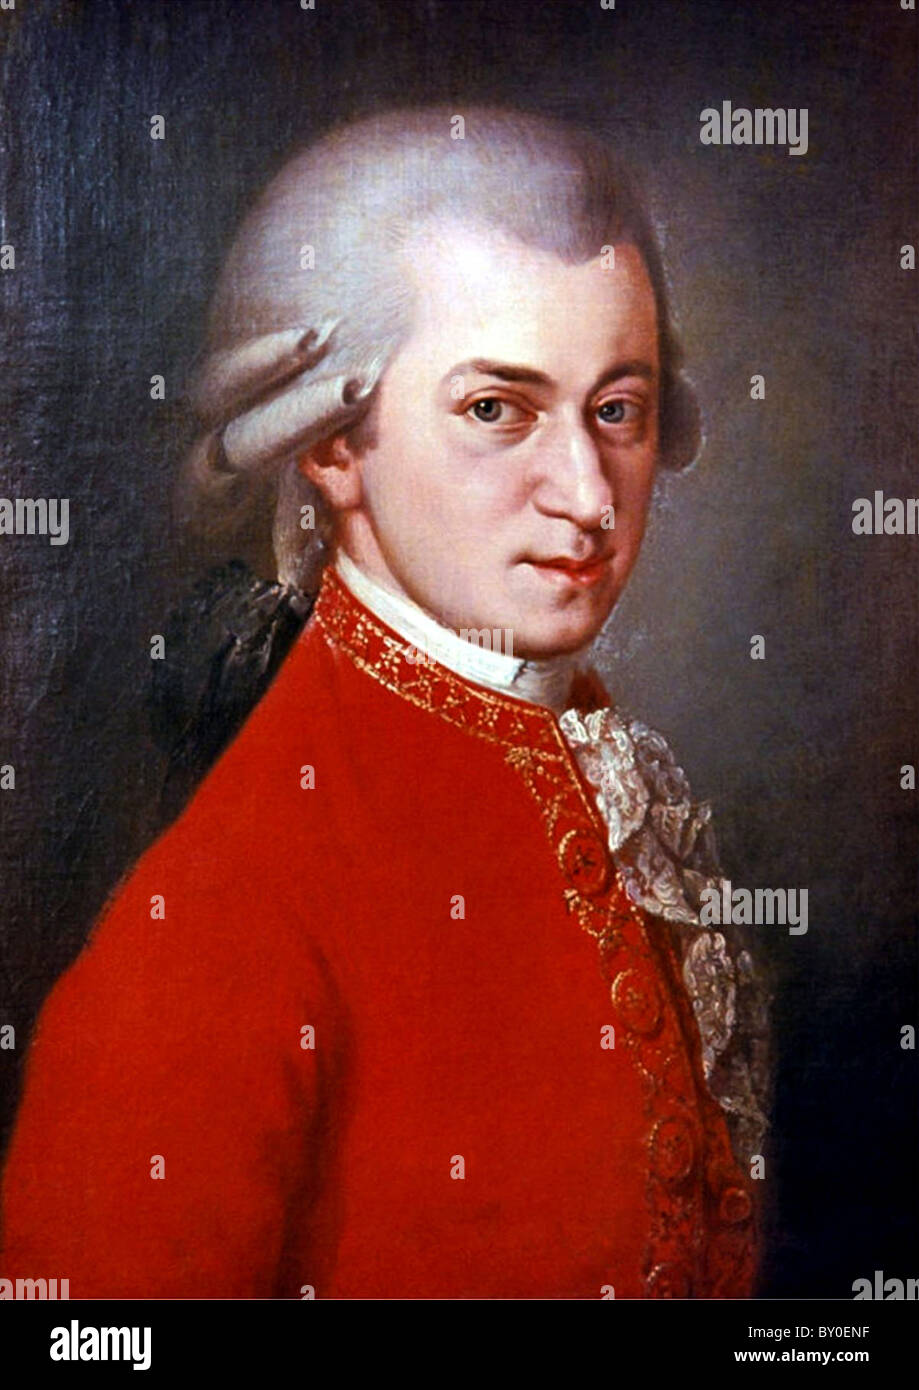 Mozart, compositeur Wolfgang Amadeus Mozart Photo Stock